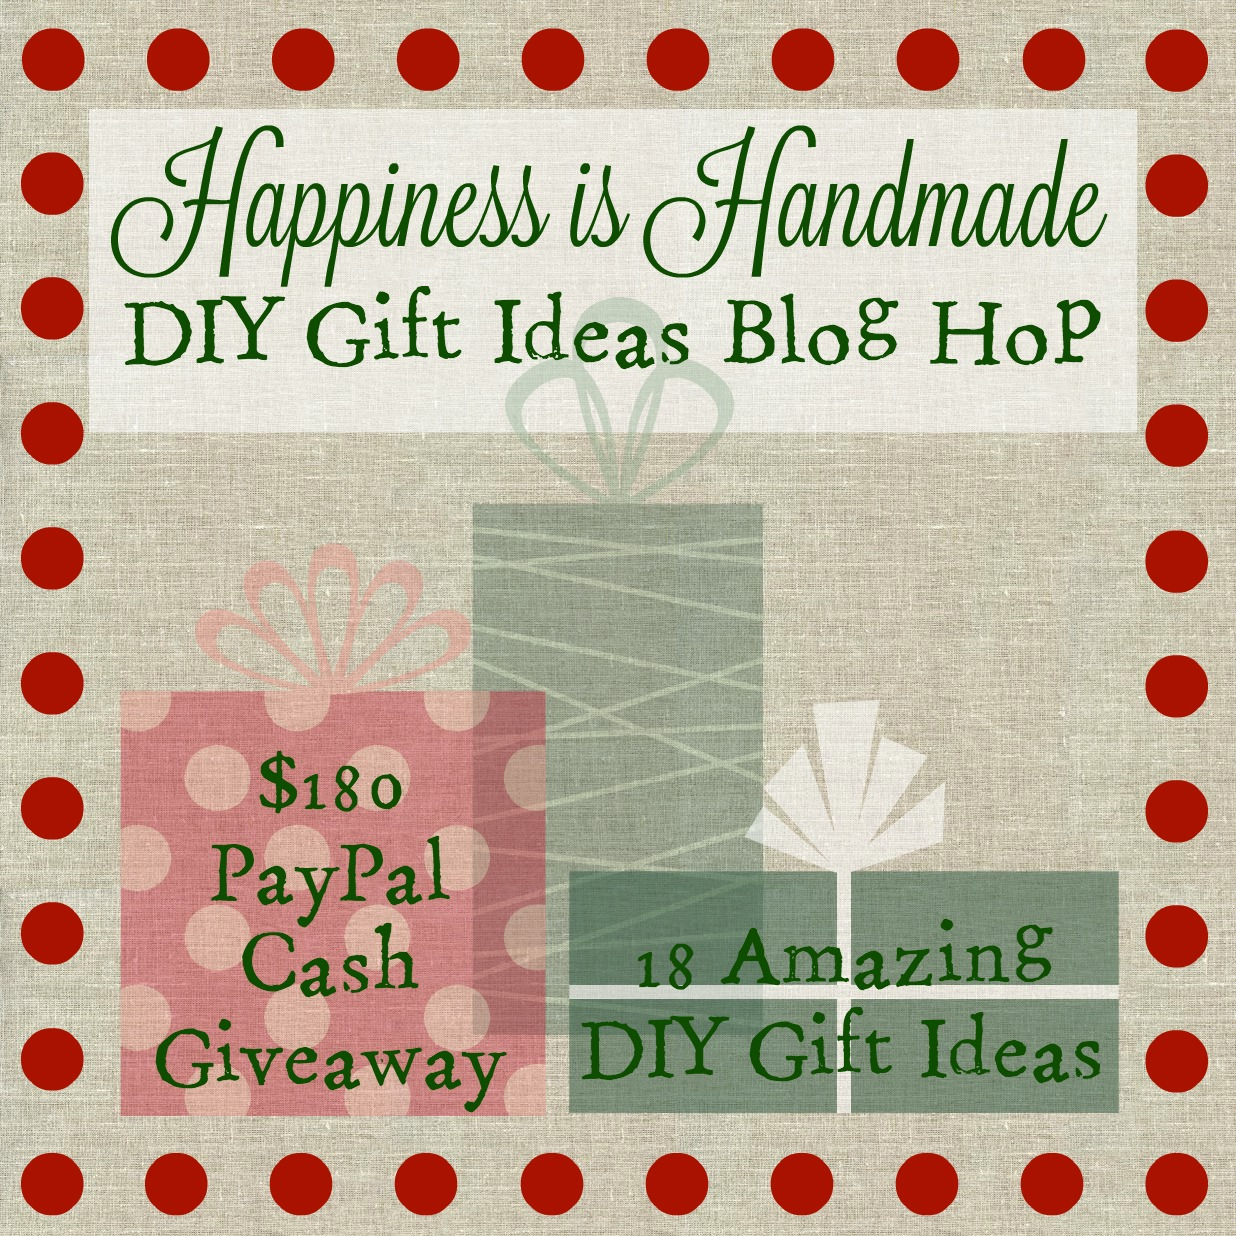 Happiness is Handmade DIY Gift Ideas Blog Hop 2015